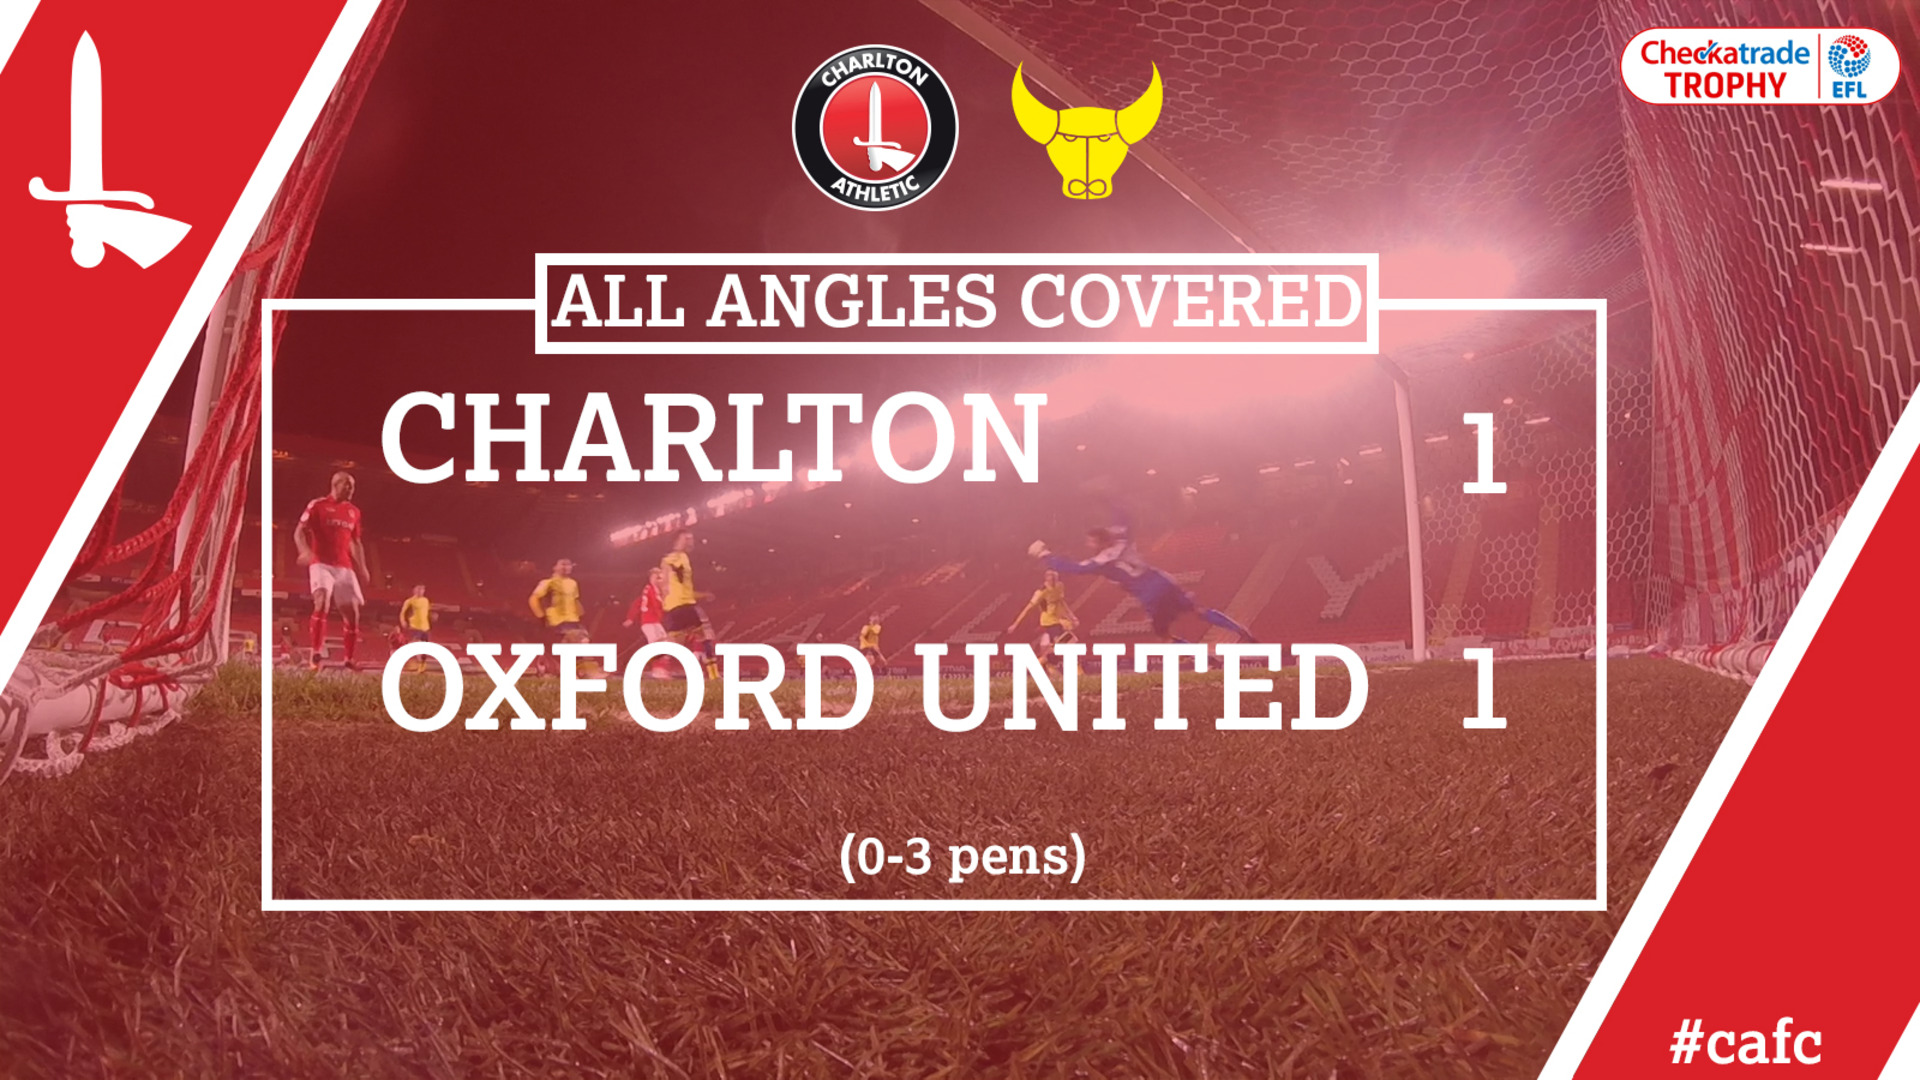 ALL ANGLES COVERED | Charlton 1 Oxford 1 (Checkatrade Trophy)